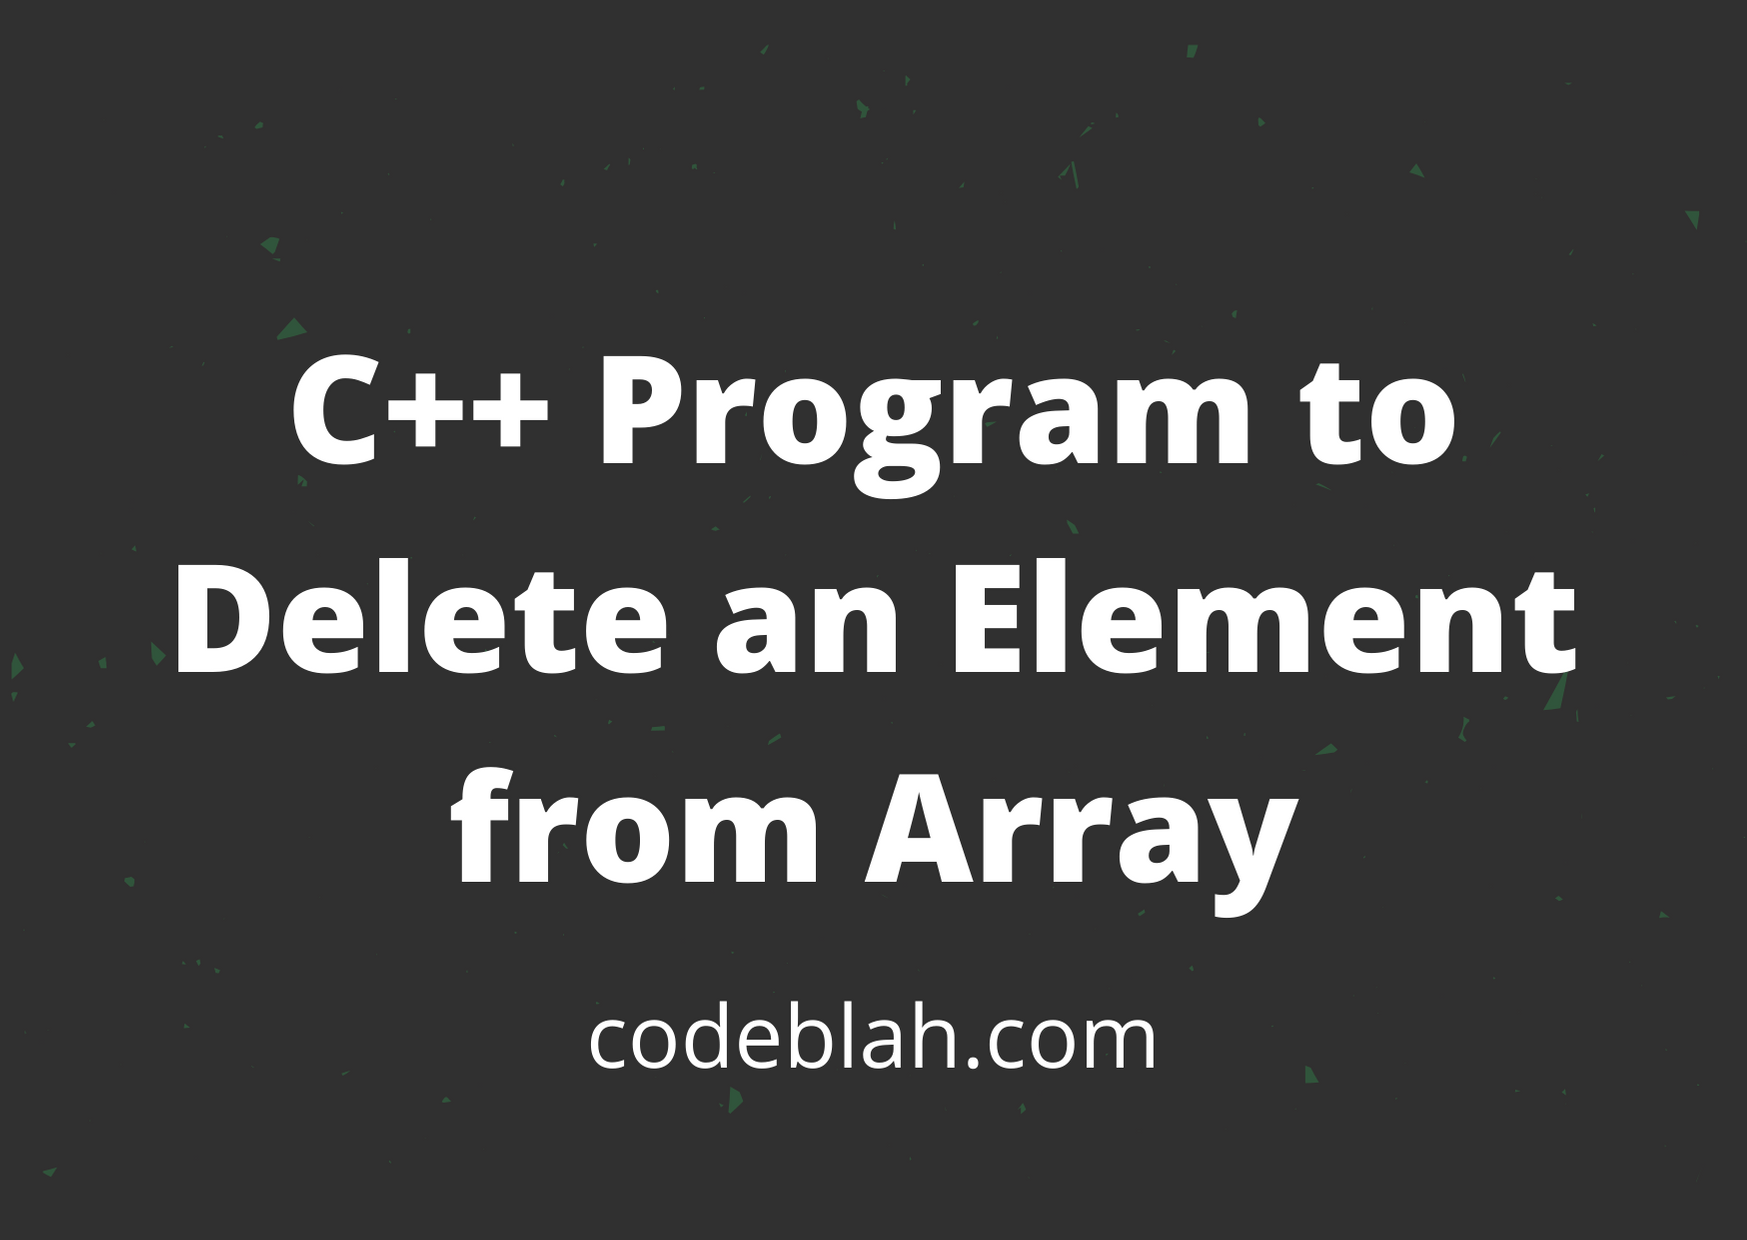 C++ Program to Delete an Element from Array